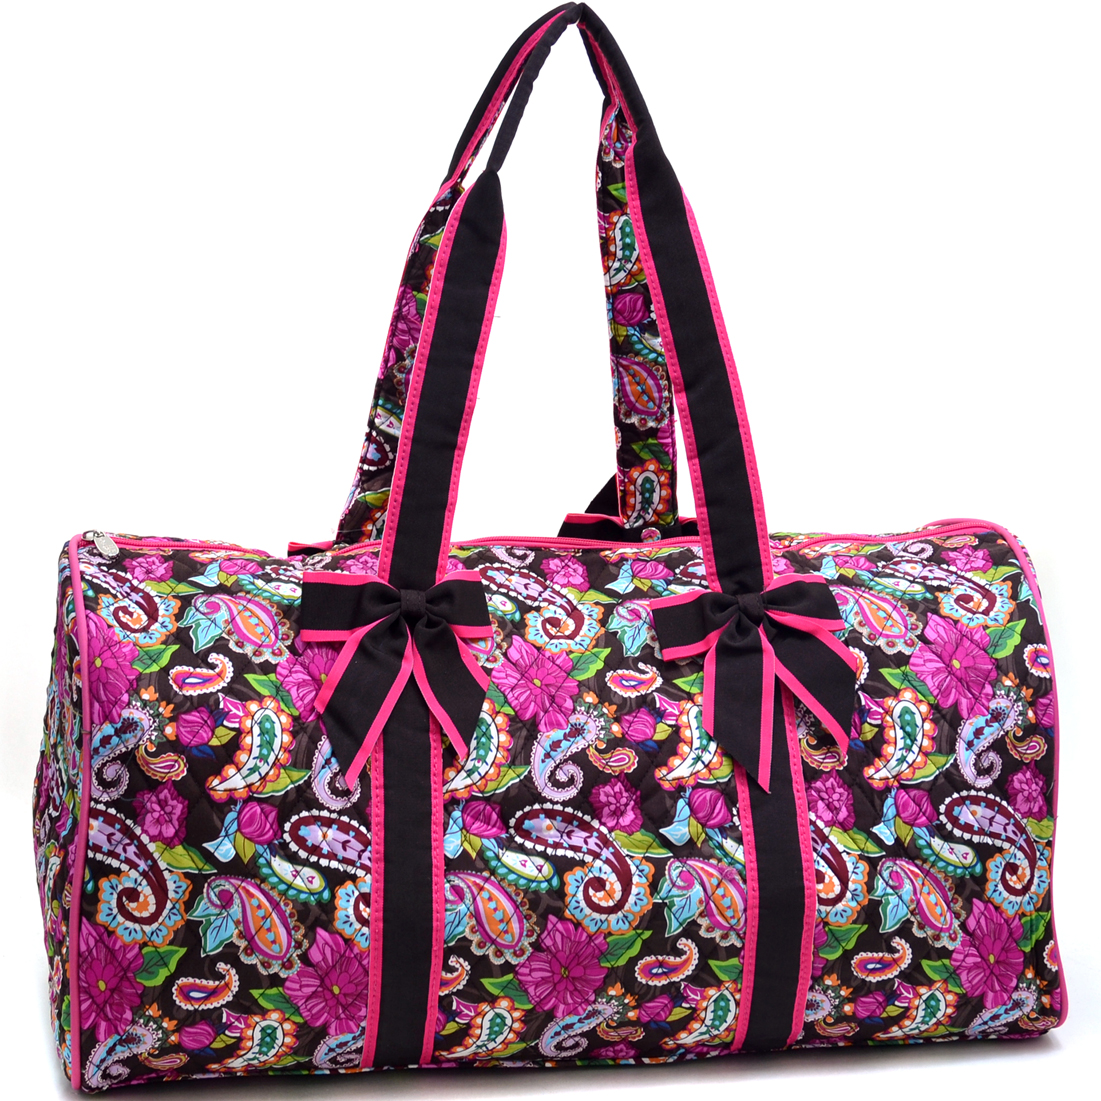 Rosen Blue® Large Quilted Duffle Bag with Bow Decor in Paisley Print